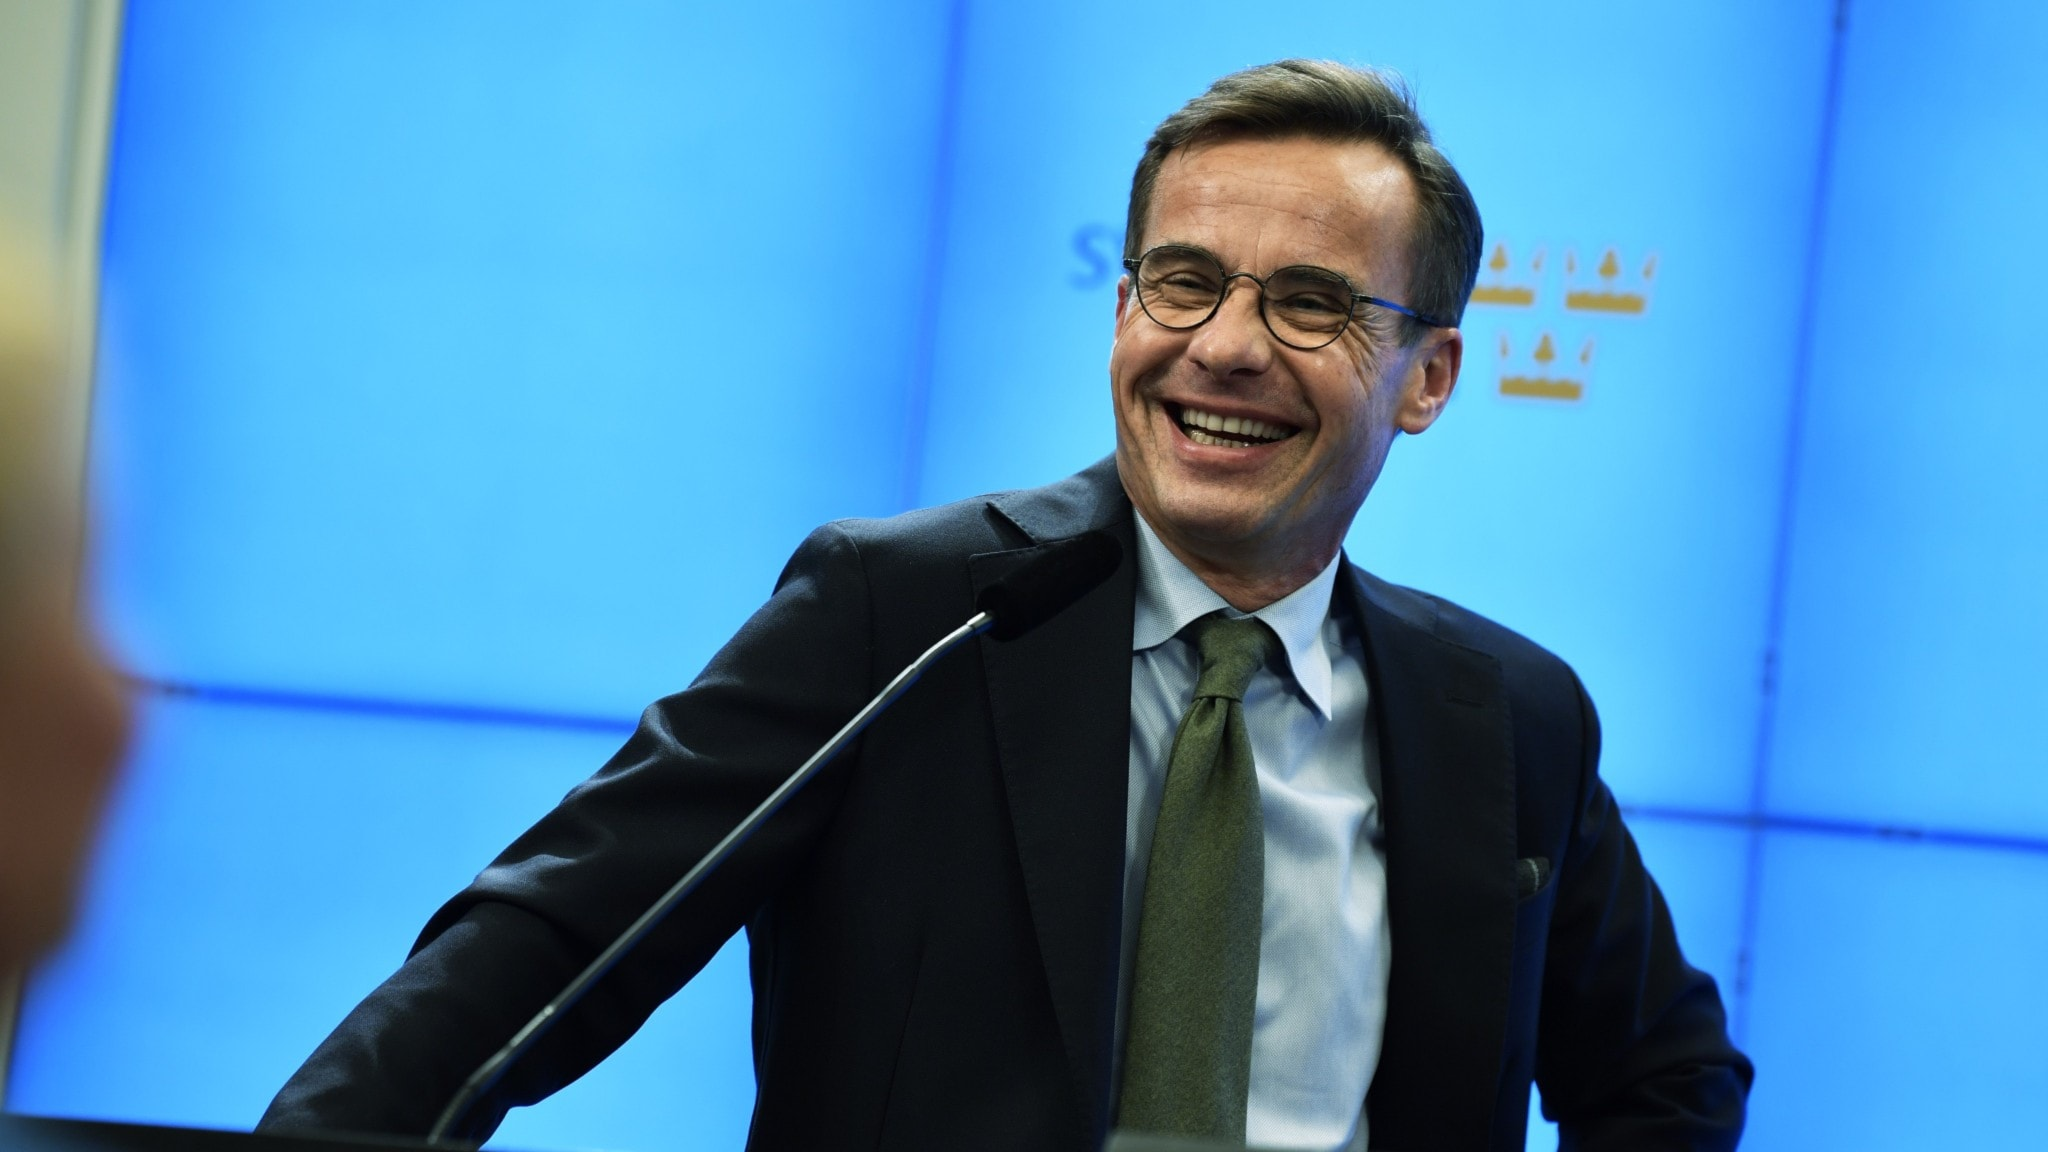 Moderate Party Leader Ulf Kristersson standing at a podium.